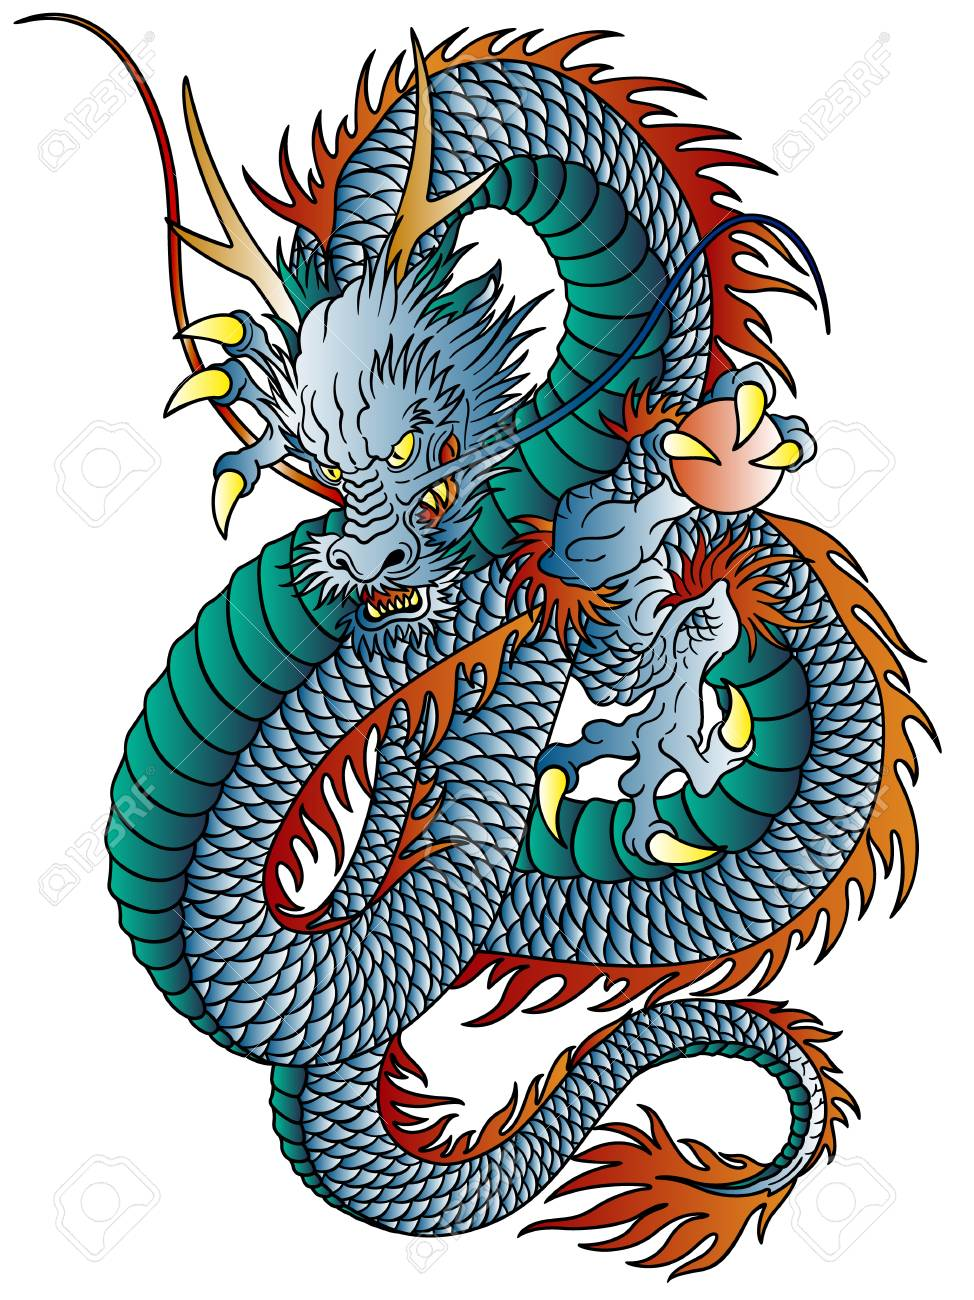 Japanese Style Dragon Illustration Isolated On White Royalty Free Cliparts Vectors And Stock Illustration Image 90602991